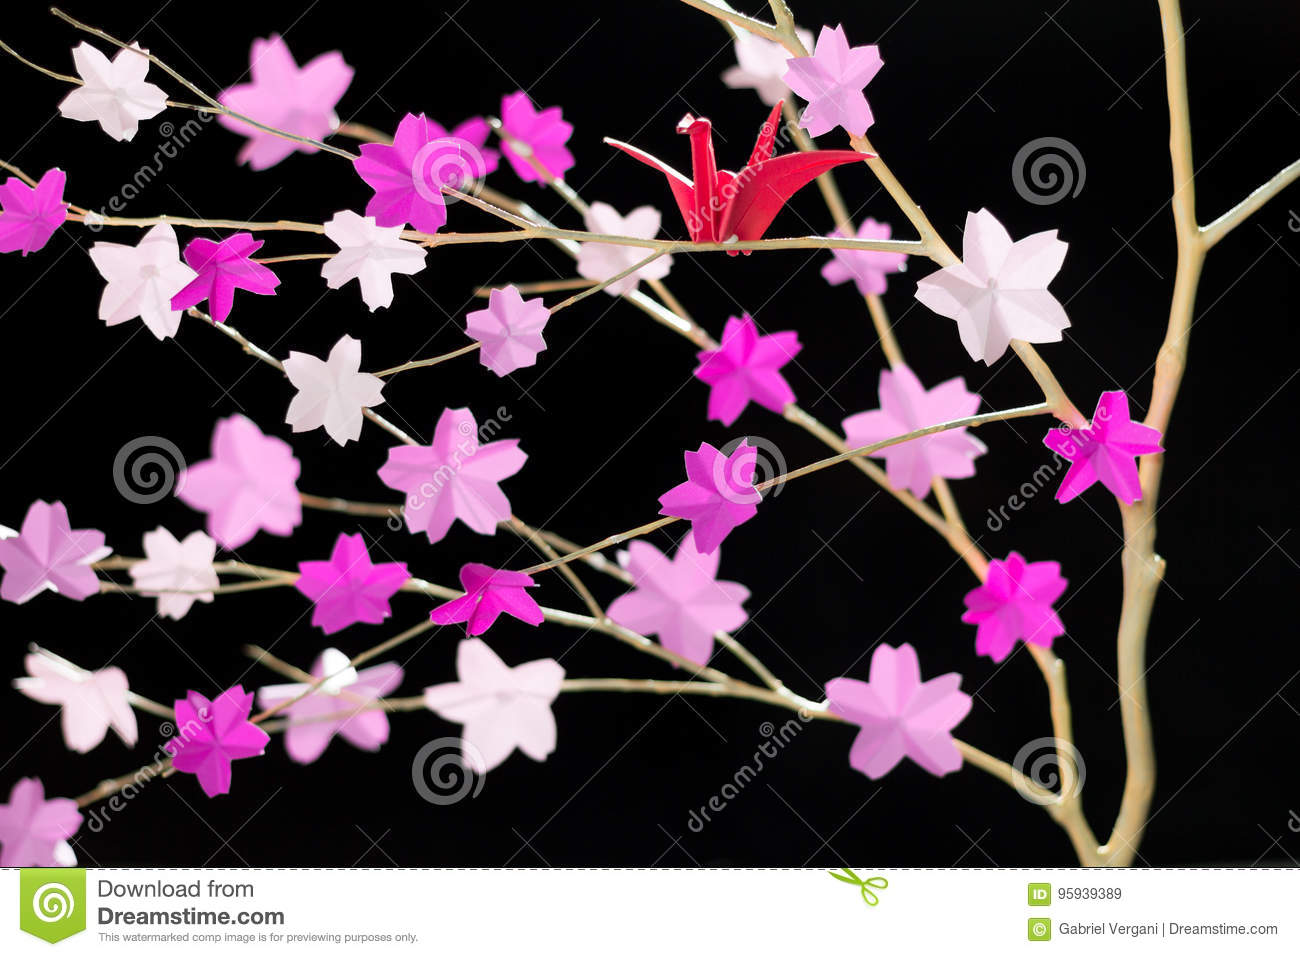 How To Make A DIY Origami Cherry Blossom Tree With Willow ... - photo#22